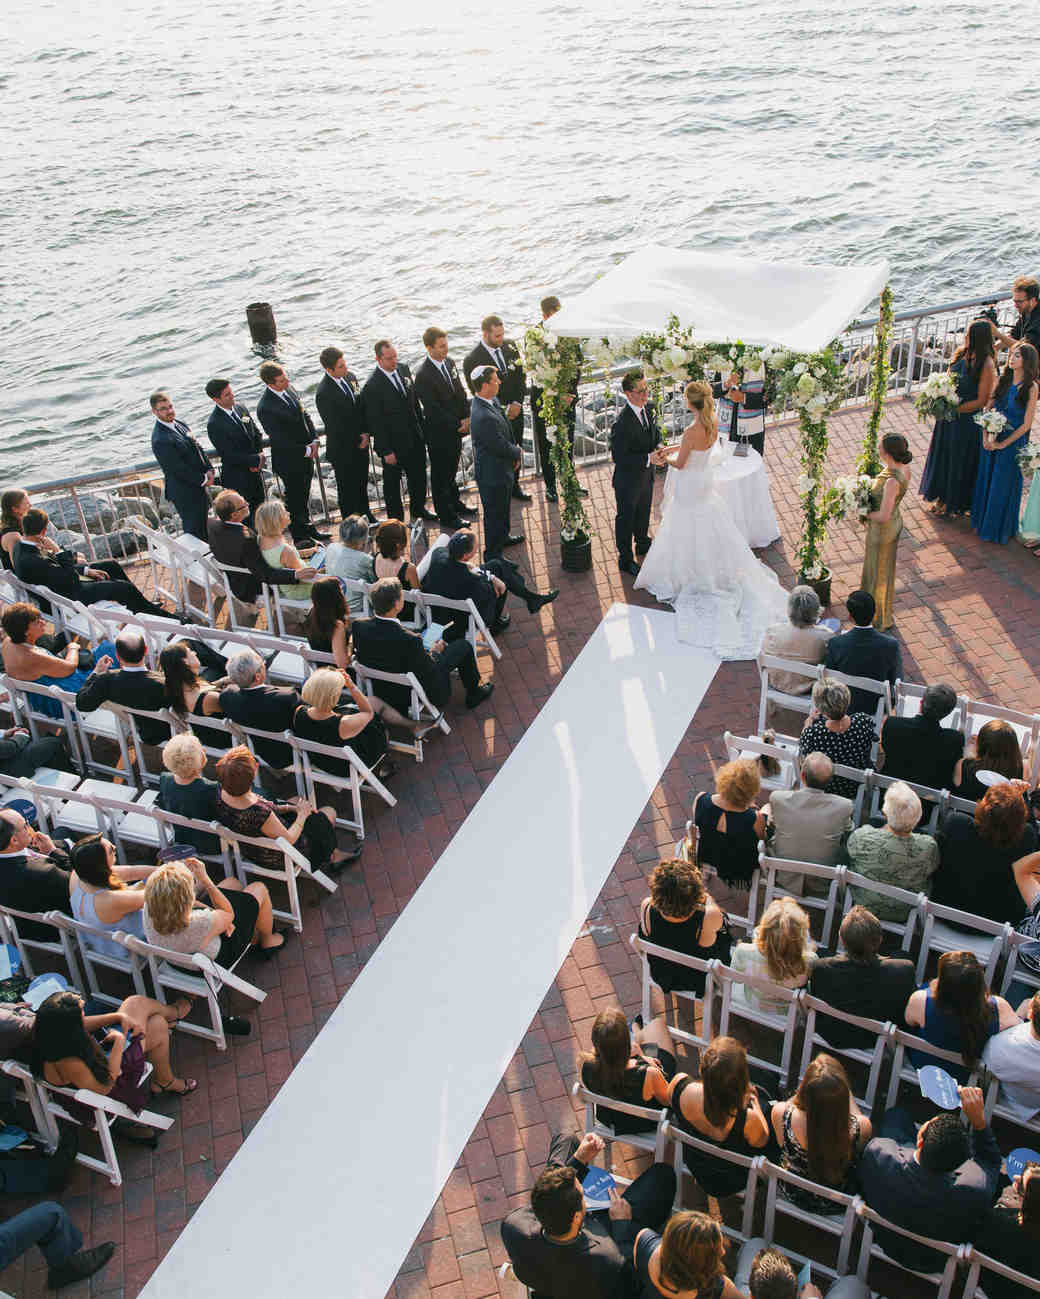 Astonishing Planning Order A Basic Wedding Ceremony Outline Planning Order Your I Your I Dos Stewart Weddings A Basic Wedding Ceremony Outline wedding Wedding Ceremony Order